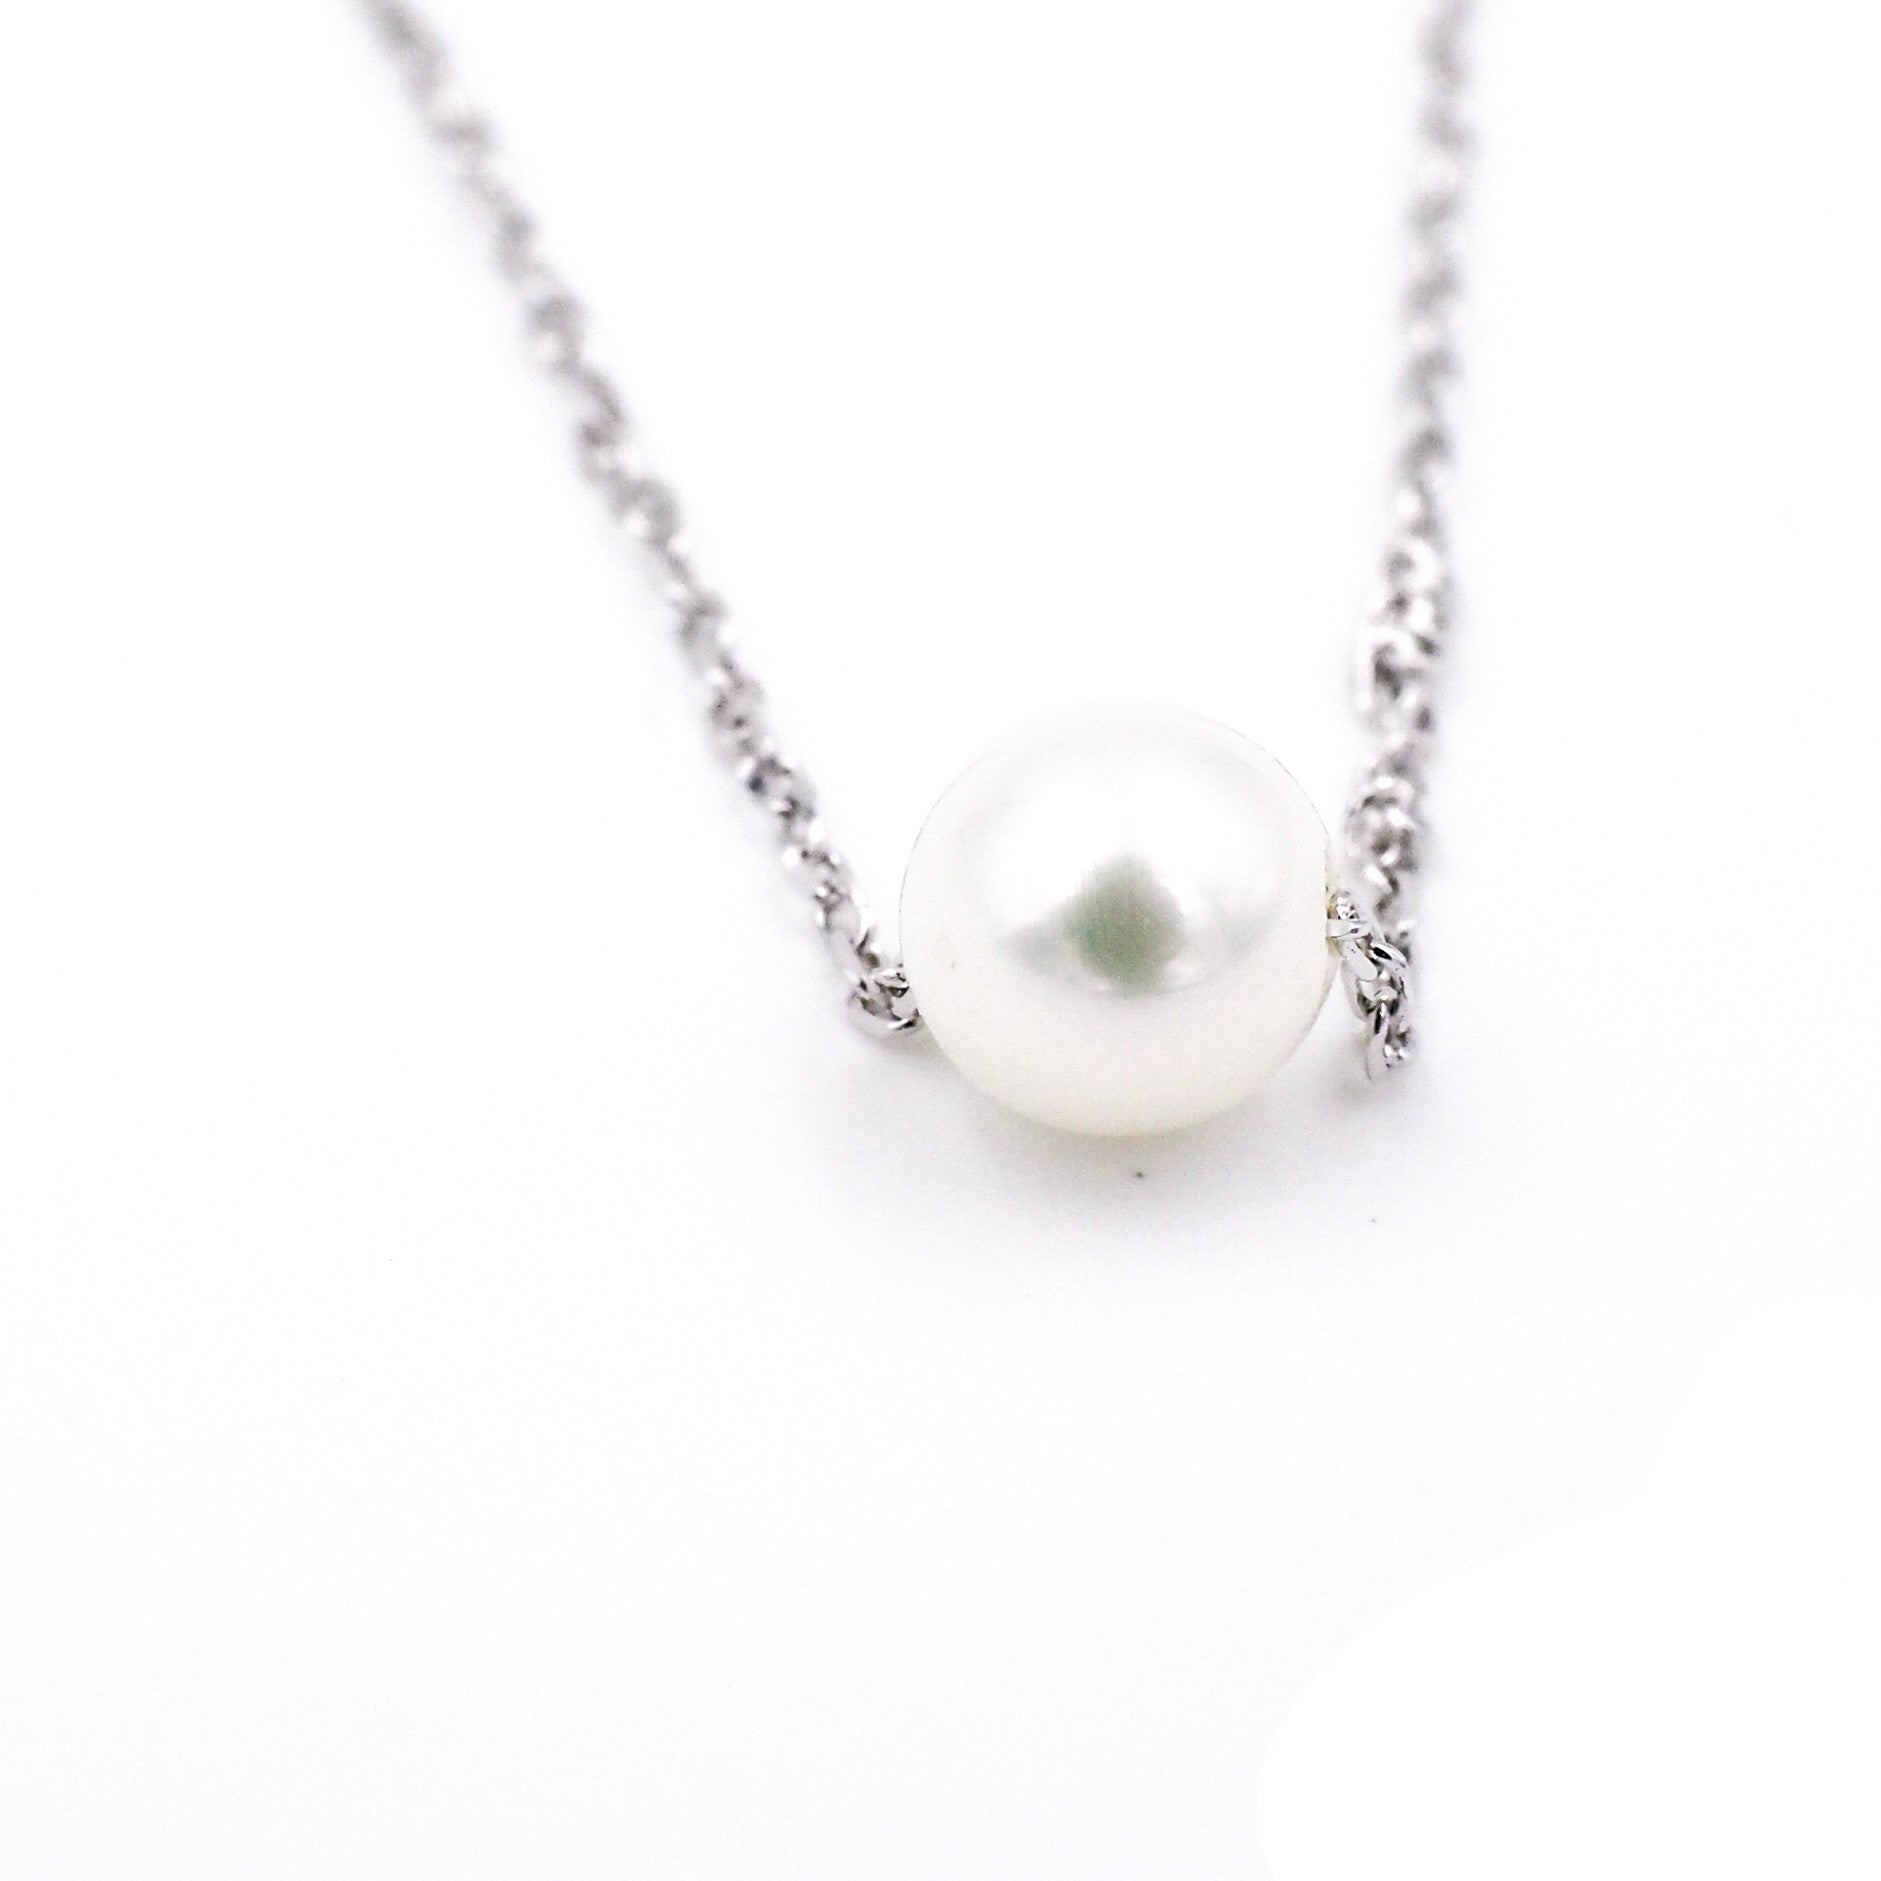 gold style pendant diamond necklace single whitegold headview pearl white sea south